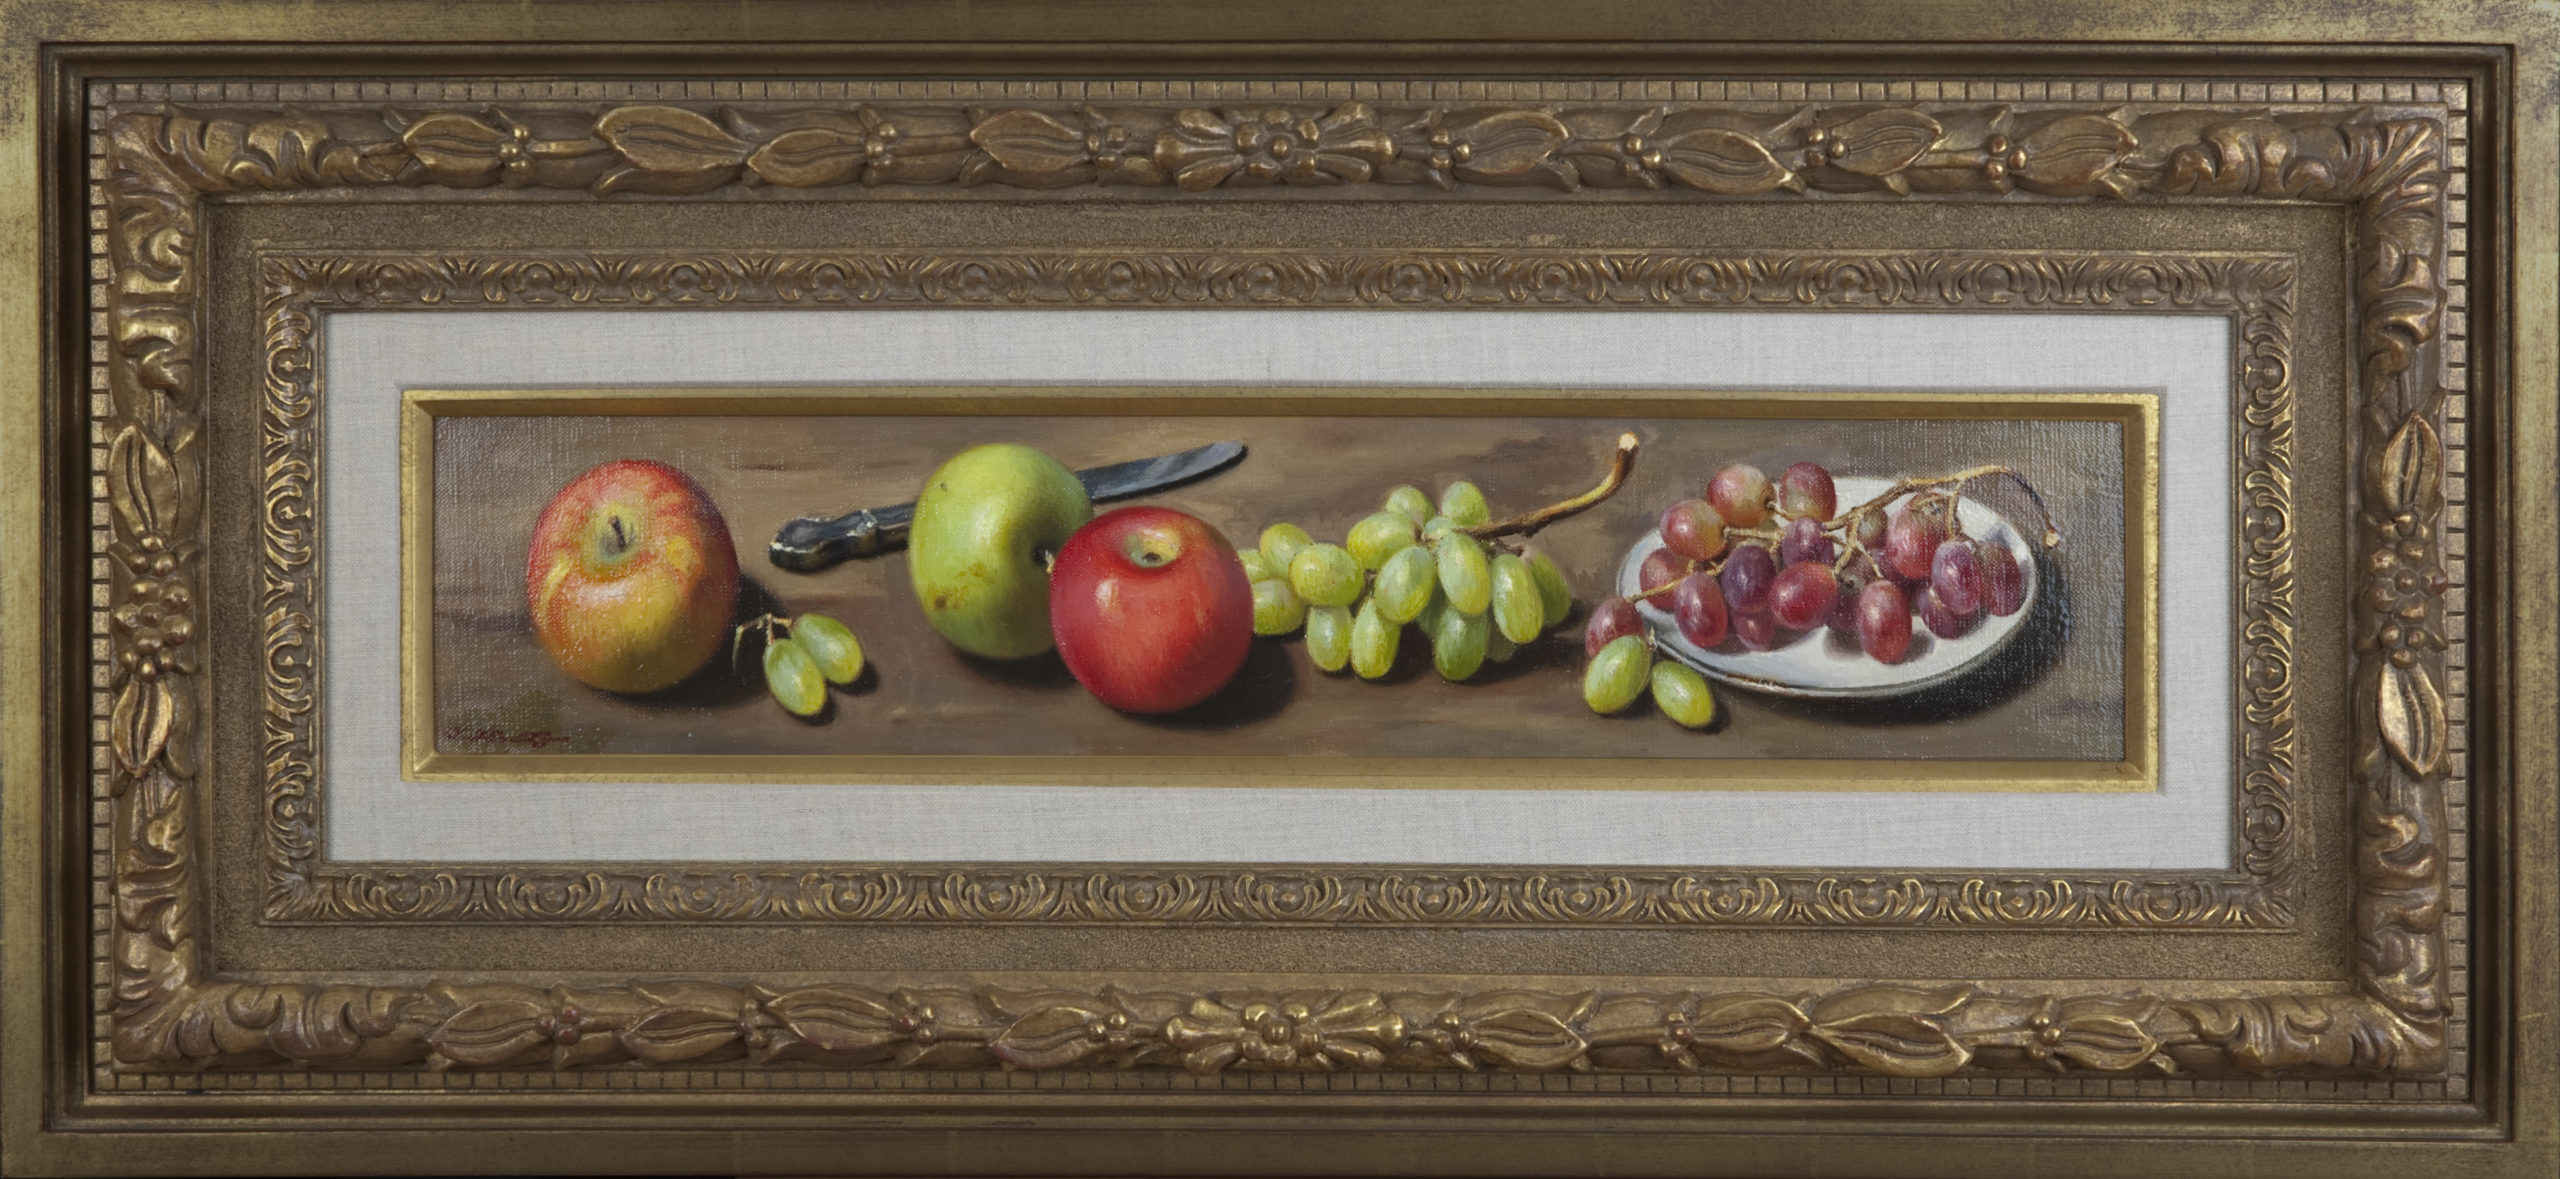 177 Apples and Grapes 1961 - Oil on Masonite - 23.825 x 4.825 - Frame: 35 x 16 x 2.5